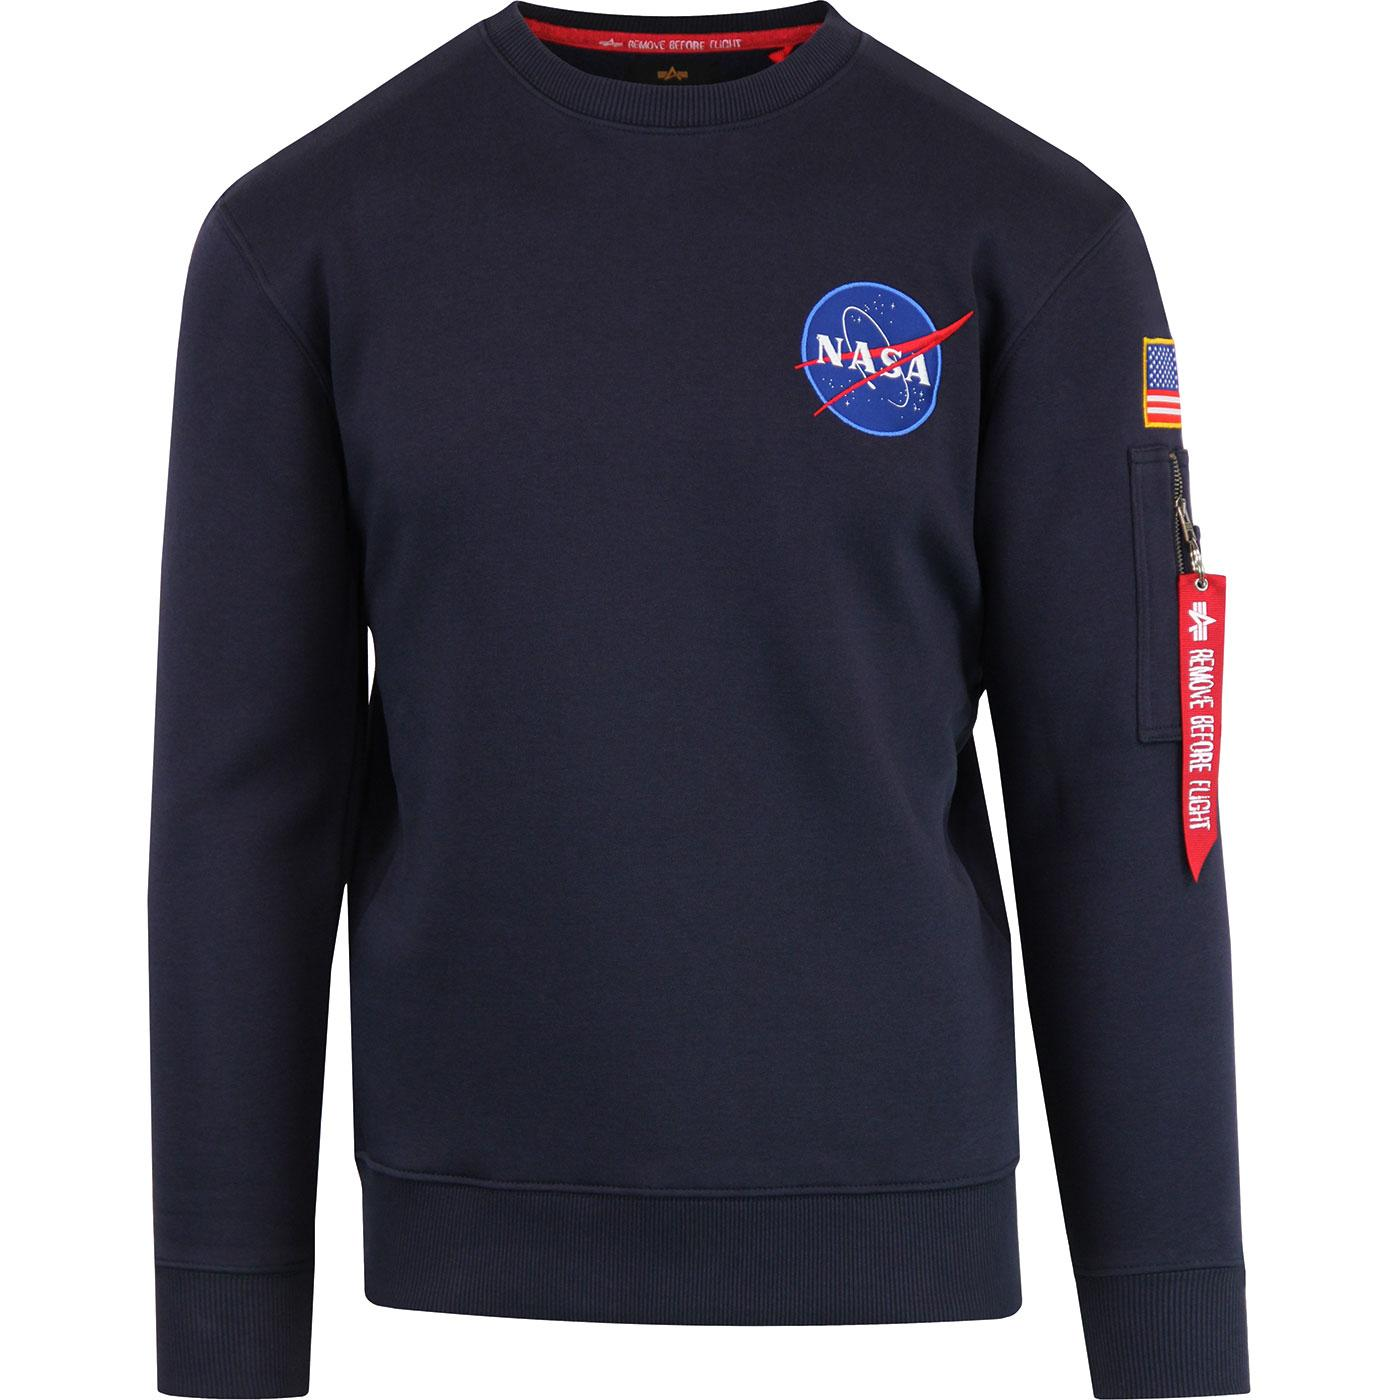 ALPHA INDUSTRIES Retro NASA Space Shuttle Sweater